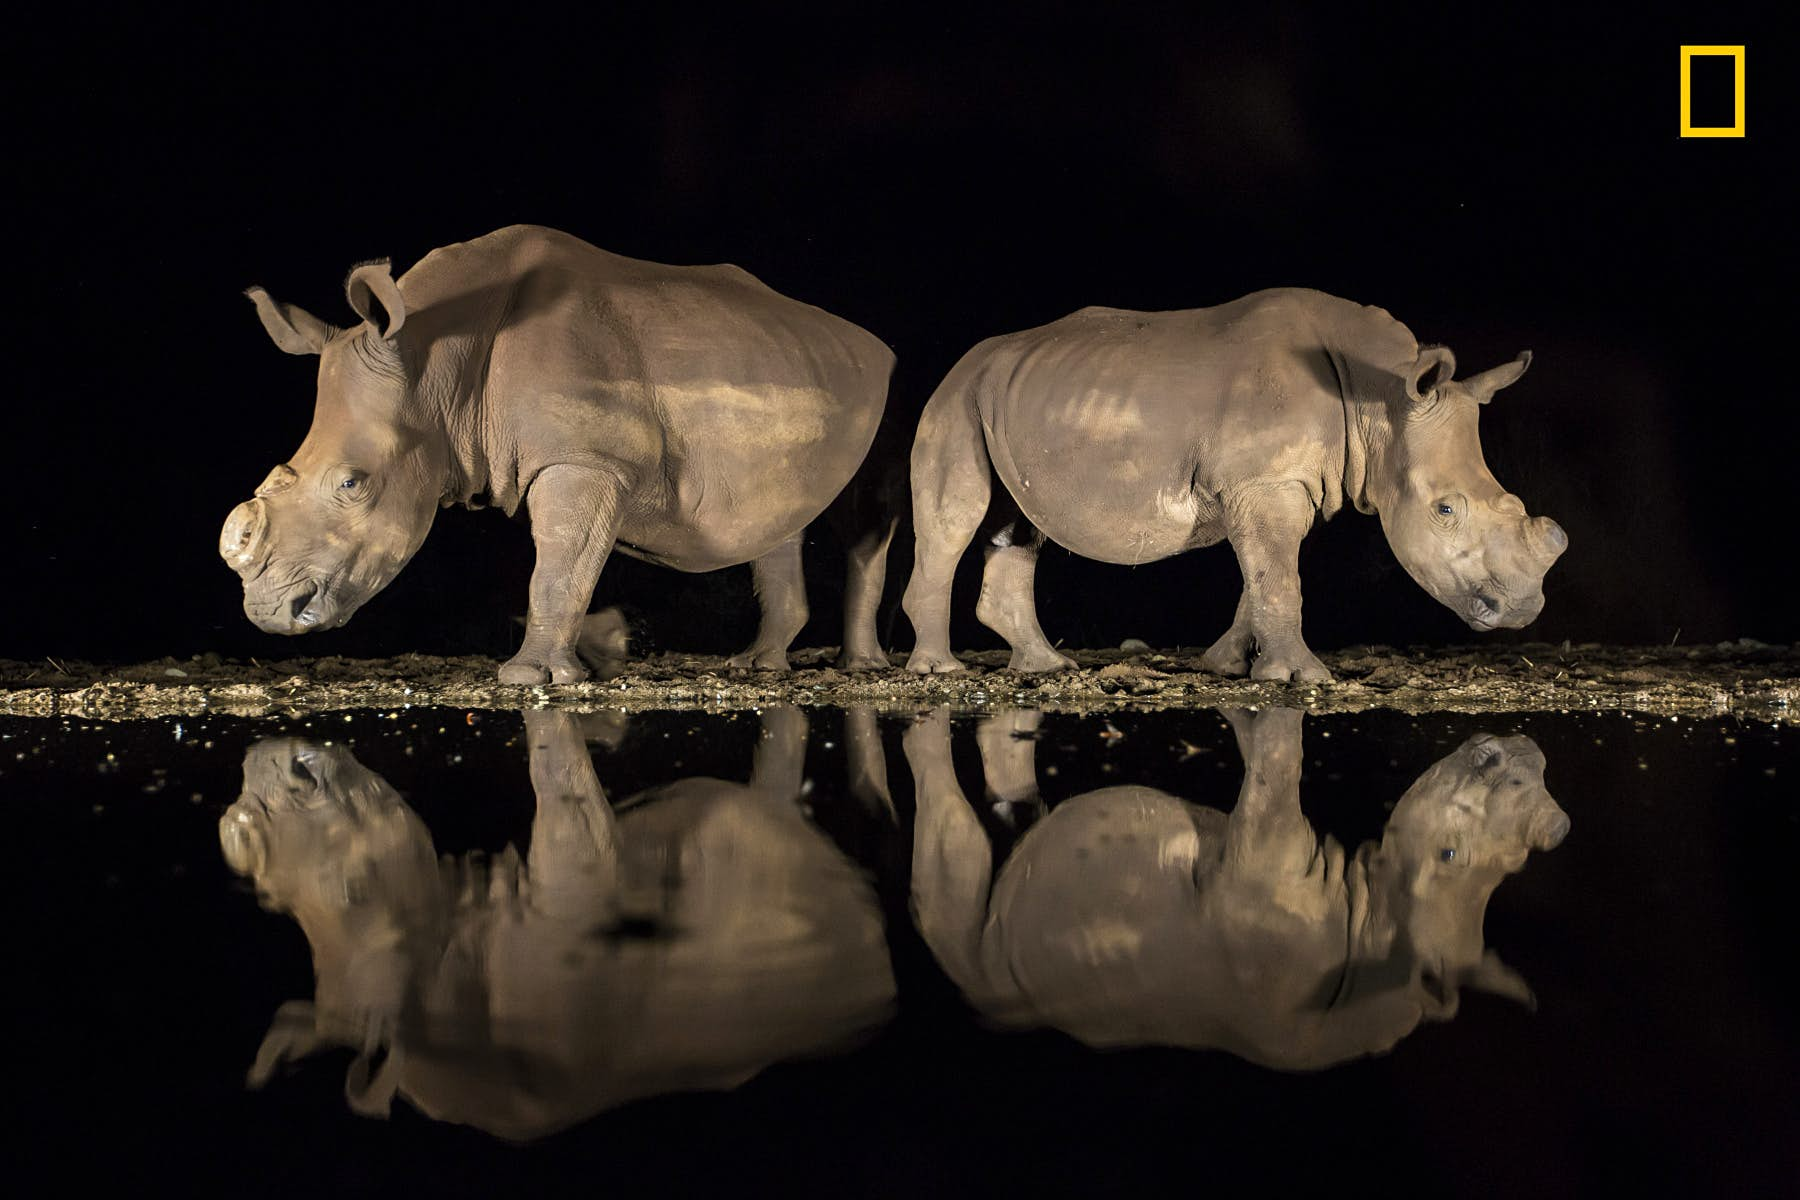 Third place in the Wildlife category went to Alison Langevad for this picture of two southern white rhinoceroses, appearing from the shadows late at night to drink from a watering hole in the Zimanga Game Reserve in South Africa. Both animals have been dehorned to deter poachers from hunting them. Image courtesy of Alison Langevad/2018 National Geographic Photo Contest